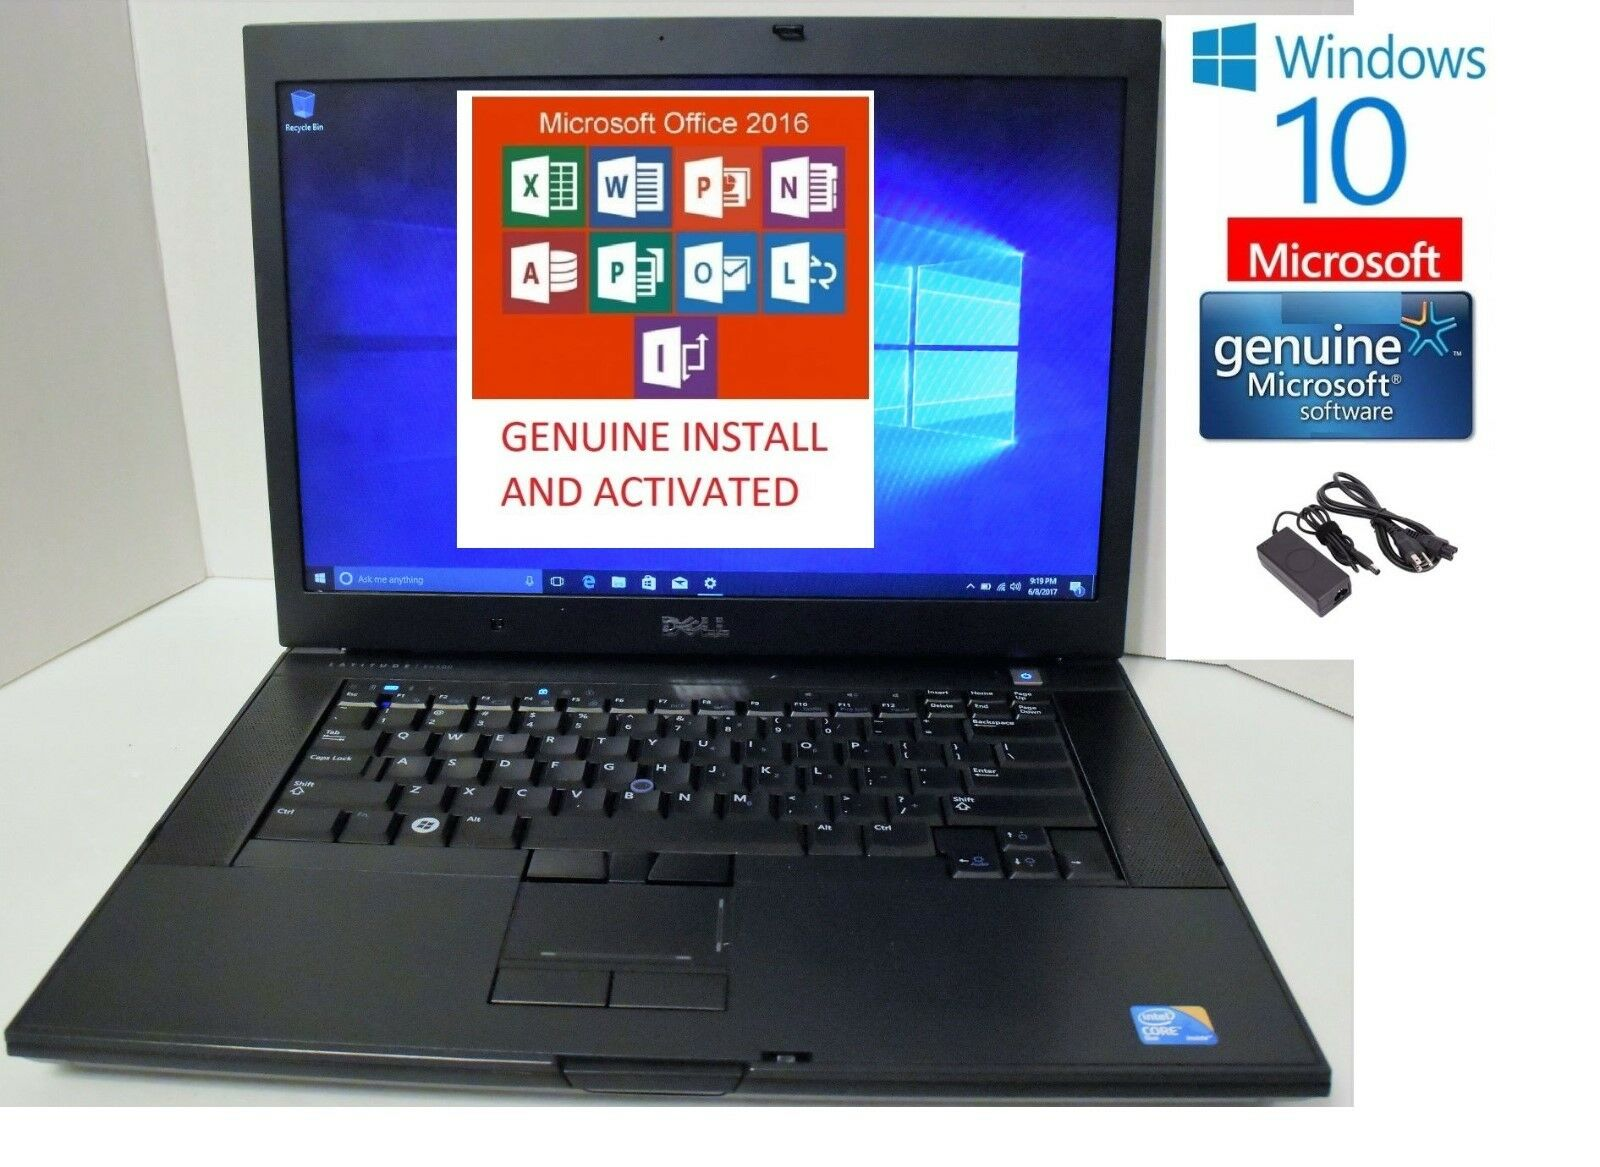 DELL LATITUDE E6500 WIN 10,,Office word 2016 complete, word,excel,Pwr ppt